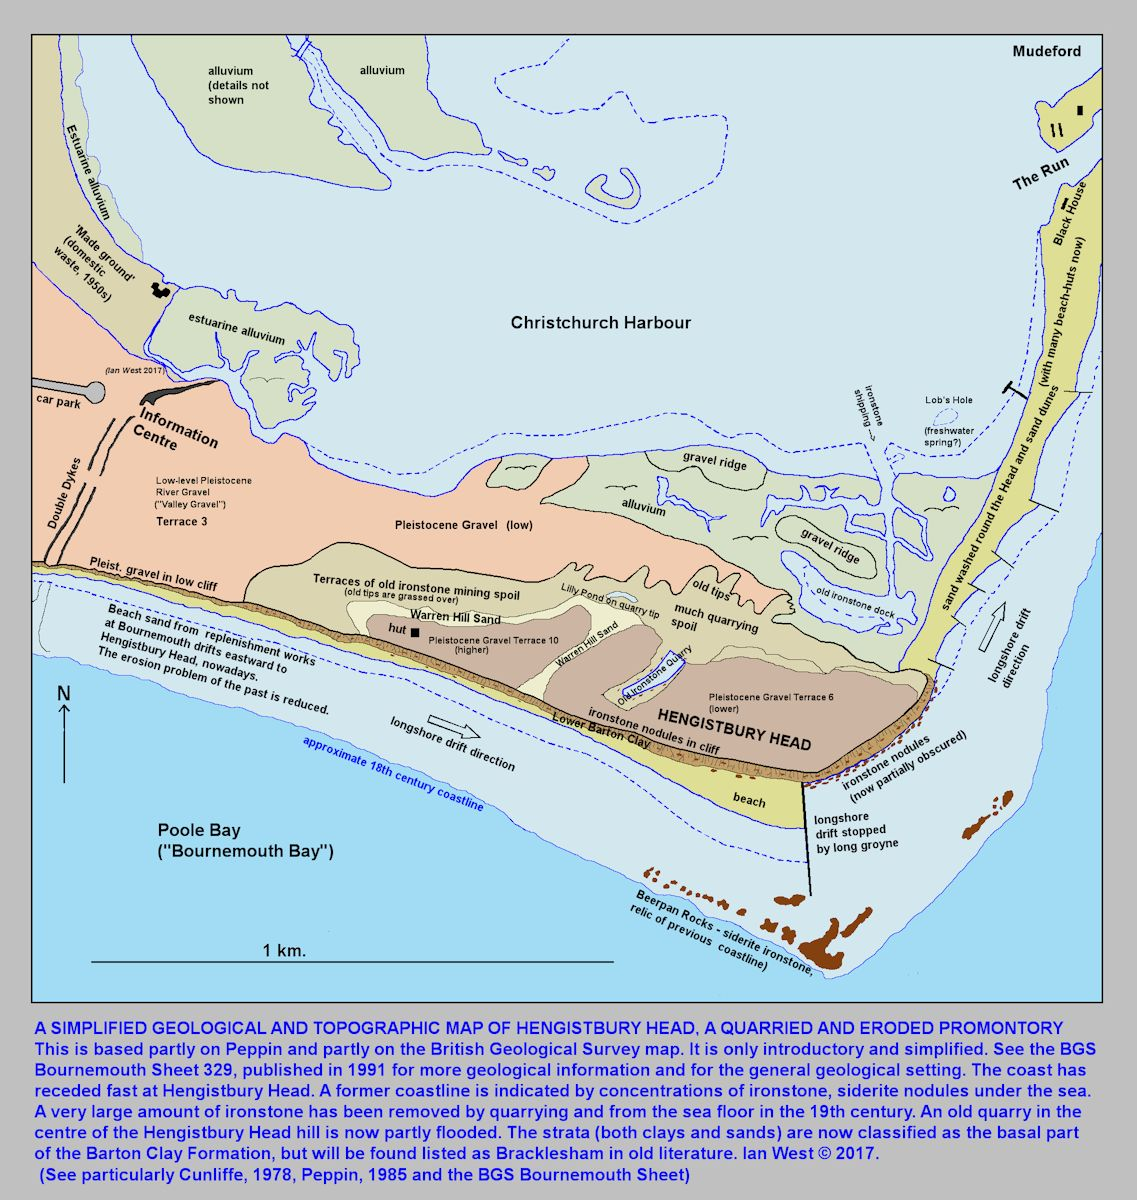 A simplified geological and general topographic map of Hengistbury Head, Bournemouth, Dorset, introductory